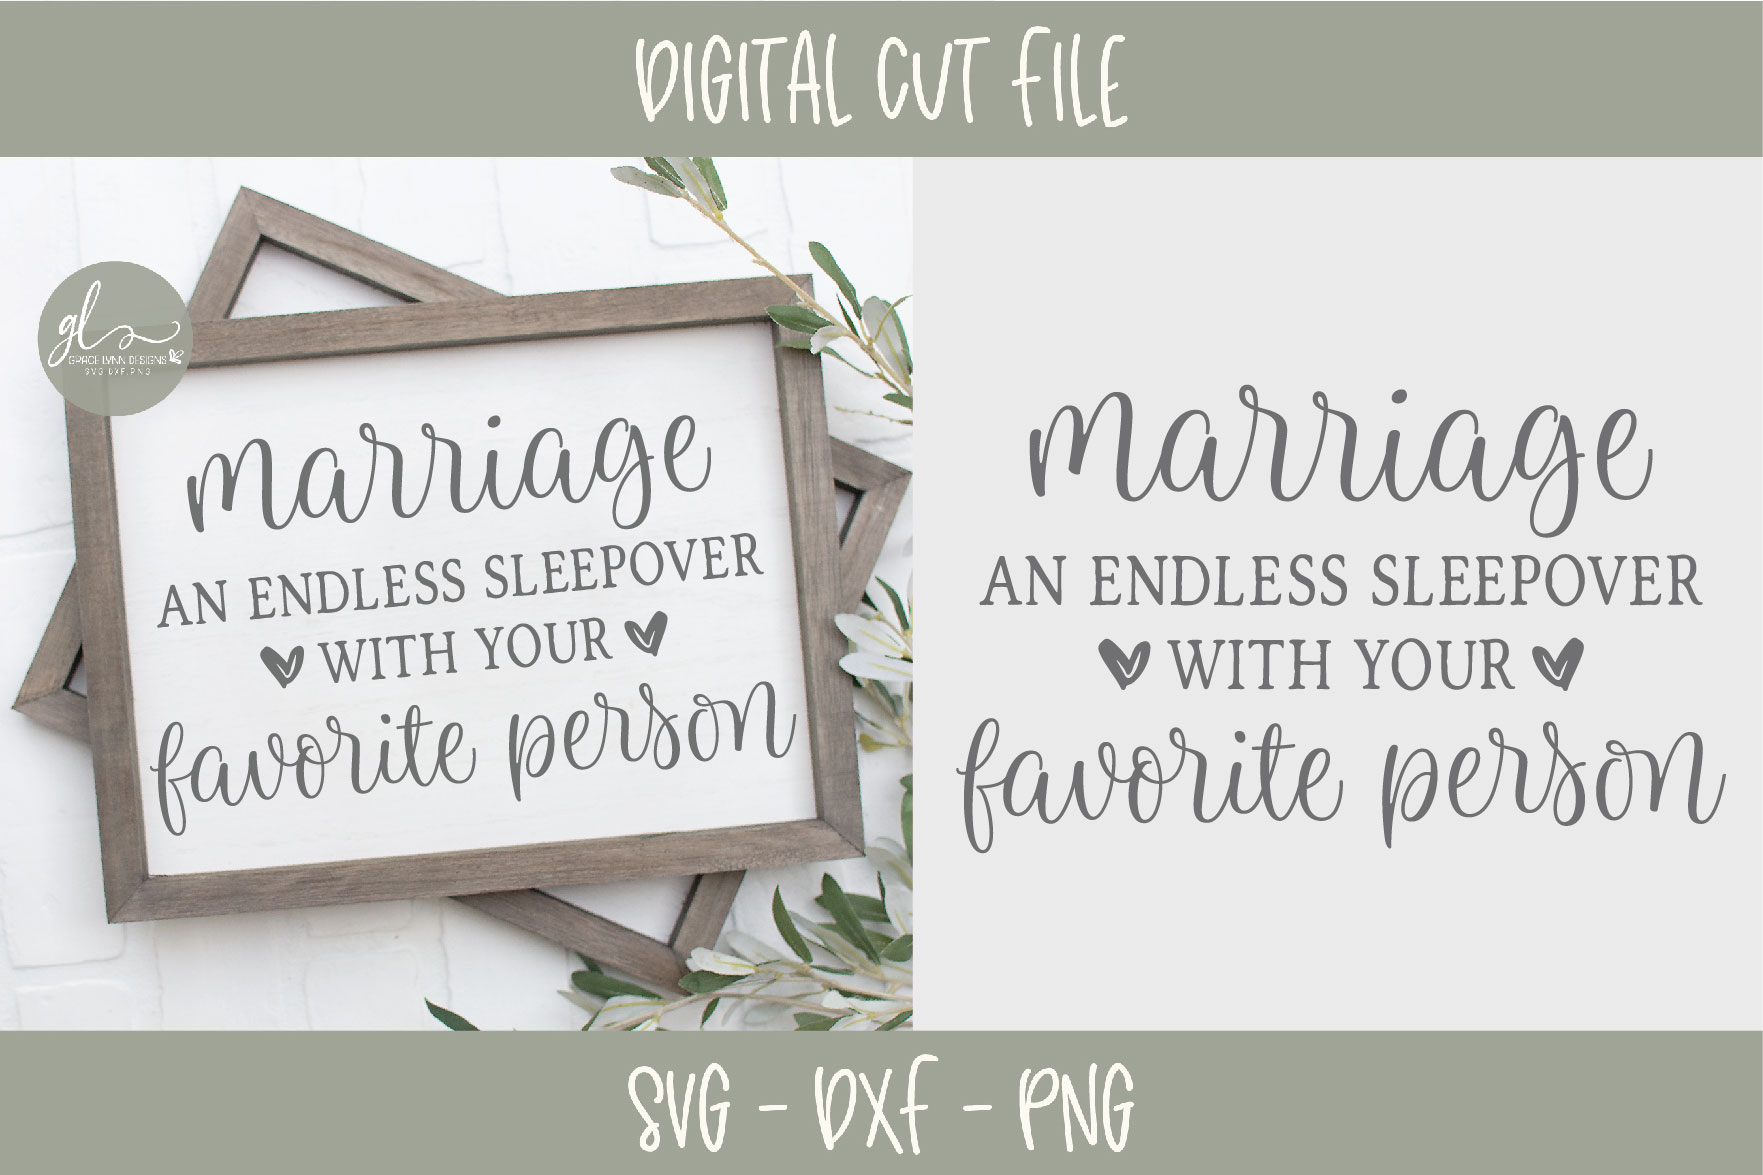 Marriage An Endless Sleepover With Your Favorite Person SVG example image 1